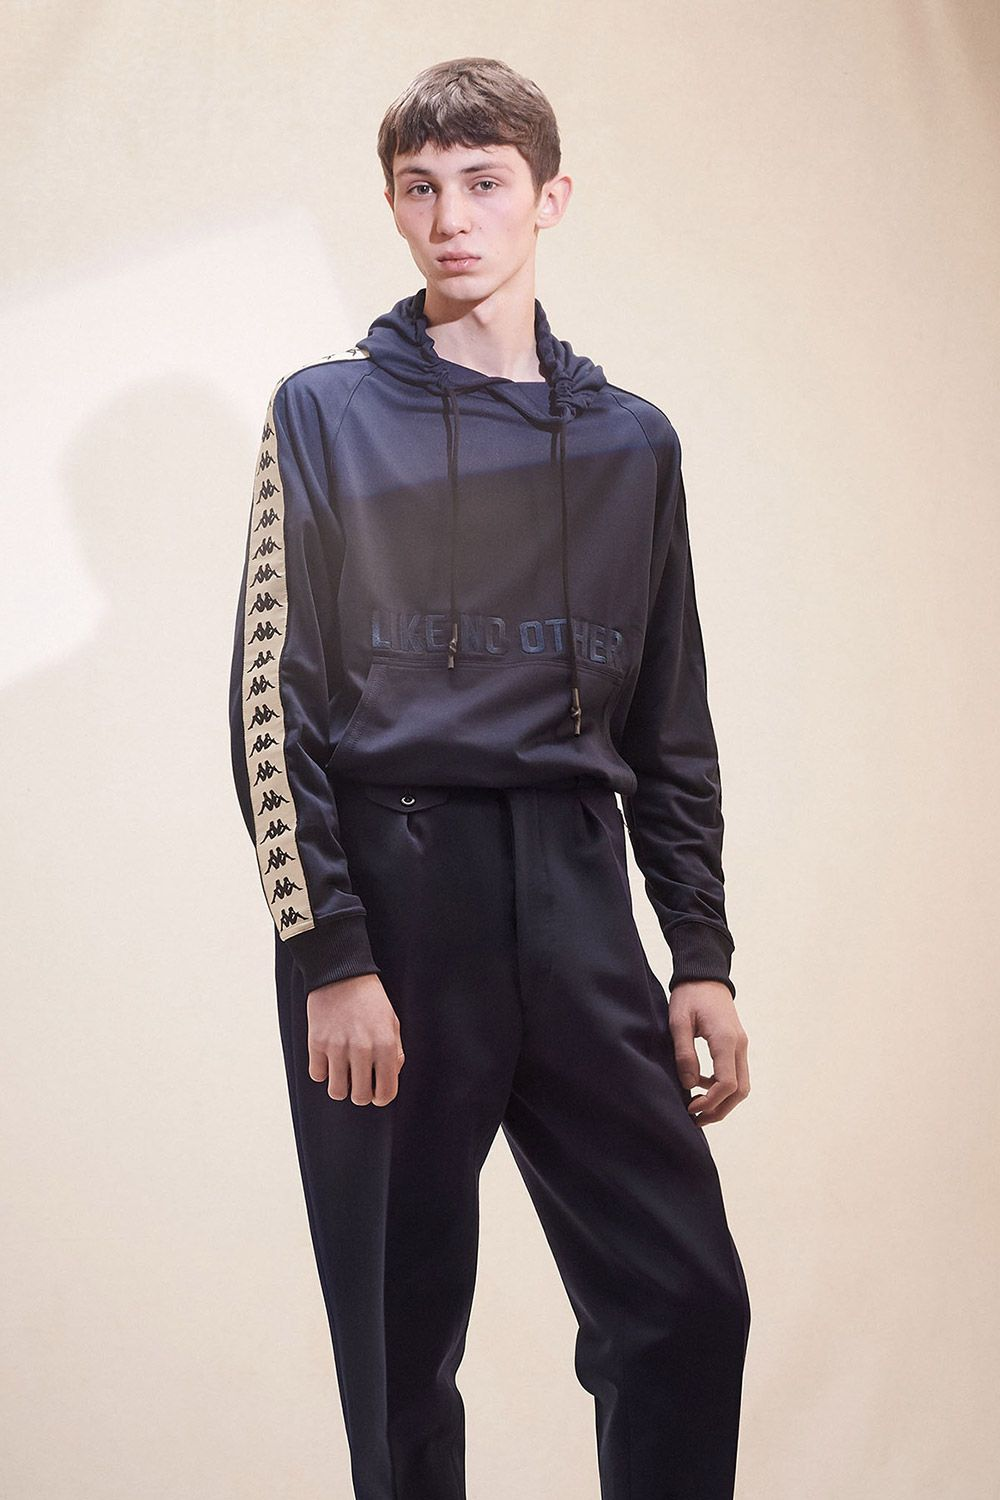 9ea9916a4fd Kappa Kontroll's Fall Collection Is Tracksuits Galore | Streetwear ...